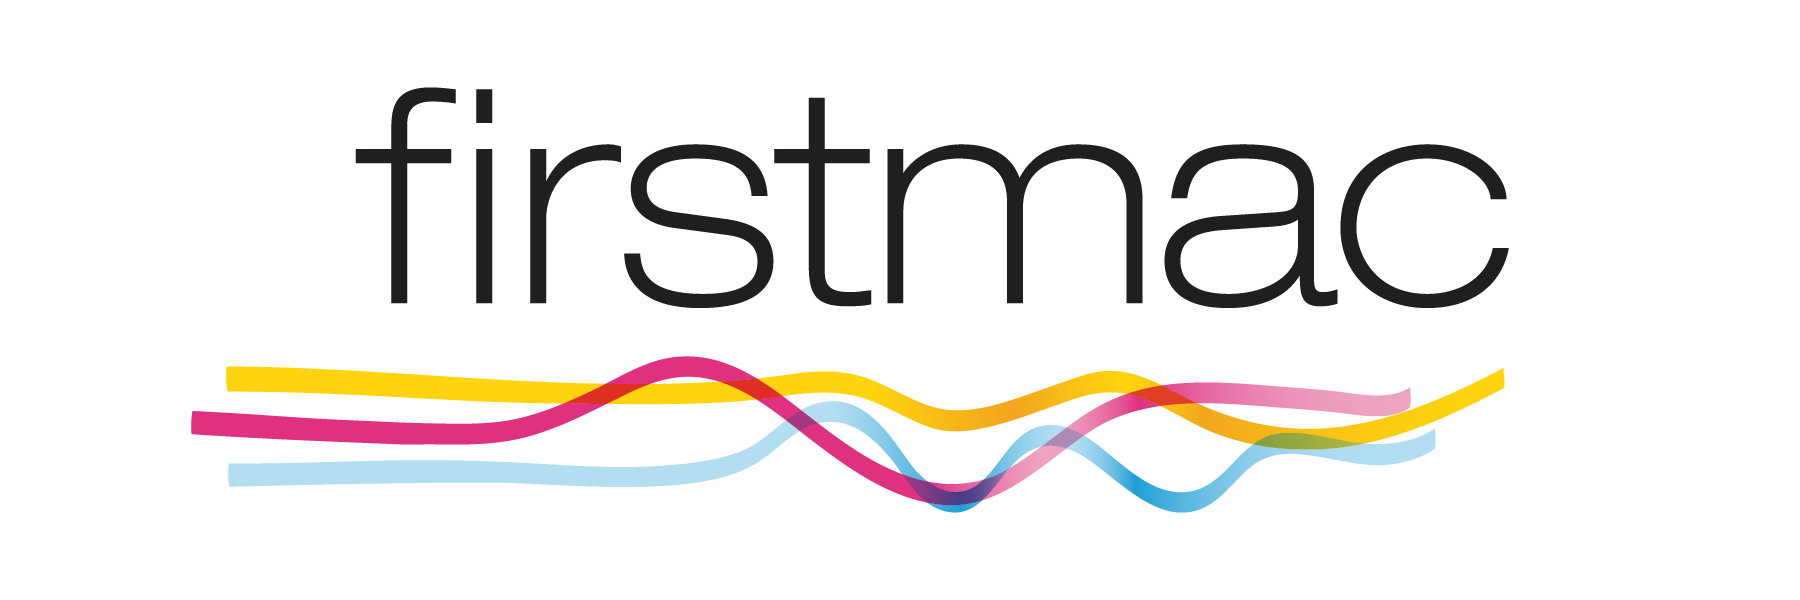 Firstmac_logo.png